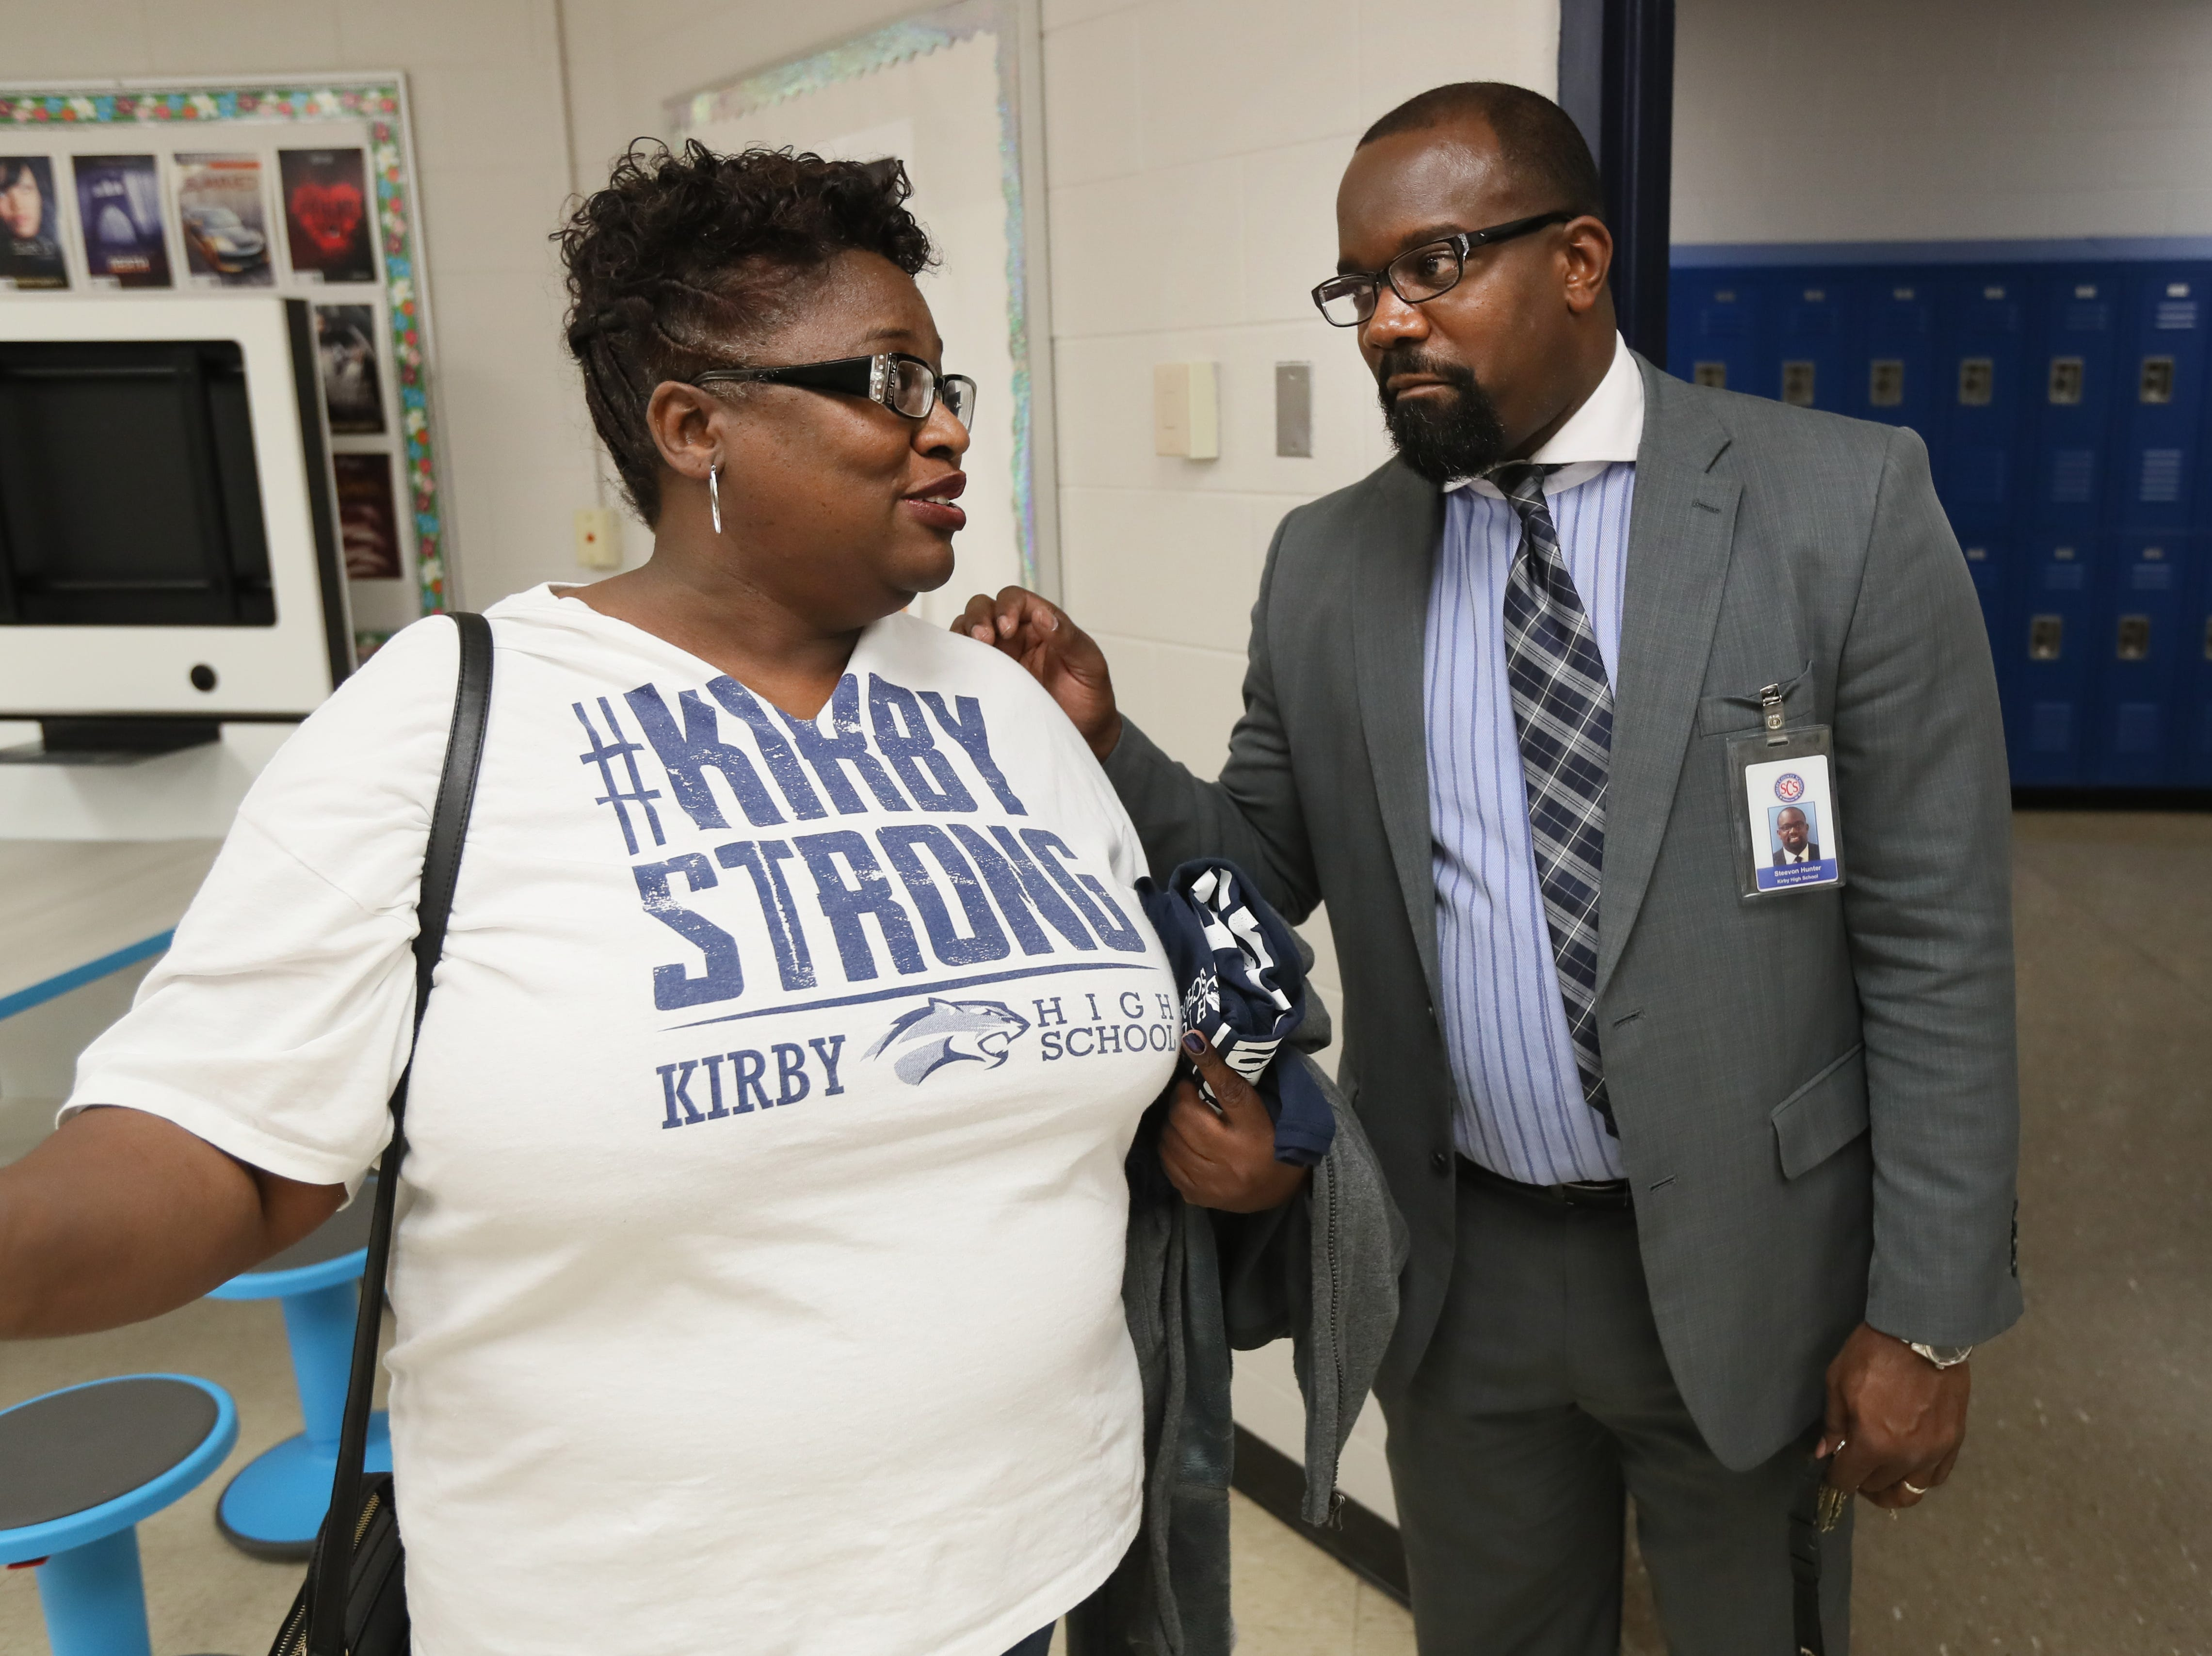 Kirby High School Principal Steevon Hunter chats with Helen Collins, whose daughter is a freshman at the school, as students, faculty and community members tour the upgrades to the building Friday. The school is planning to officially reopen Monday, January 7, 2019 after months of being closed due to a rodent infestation.